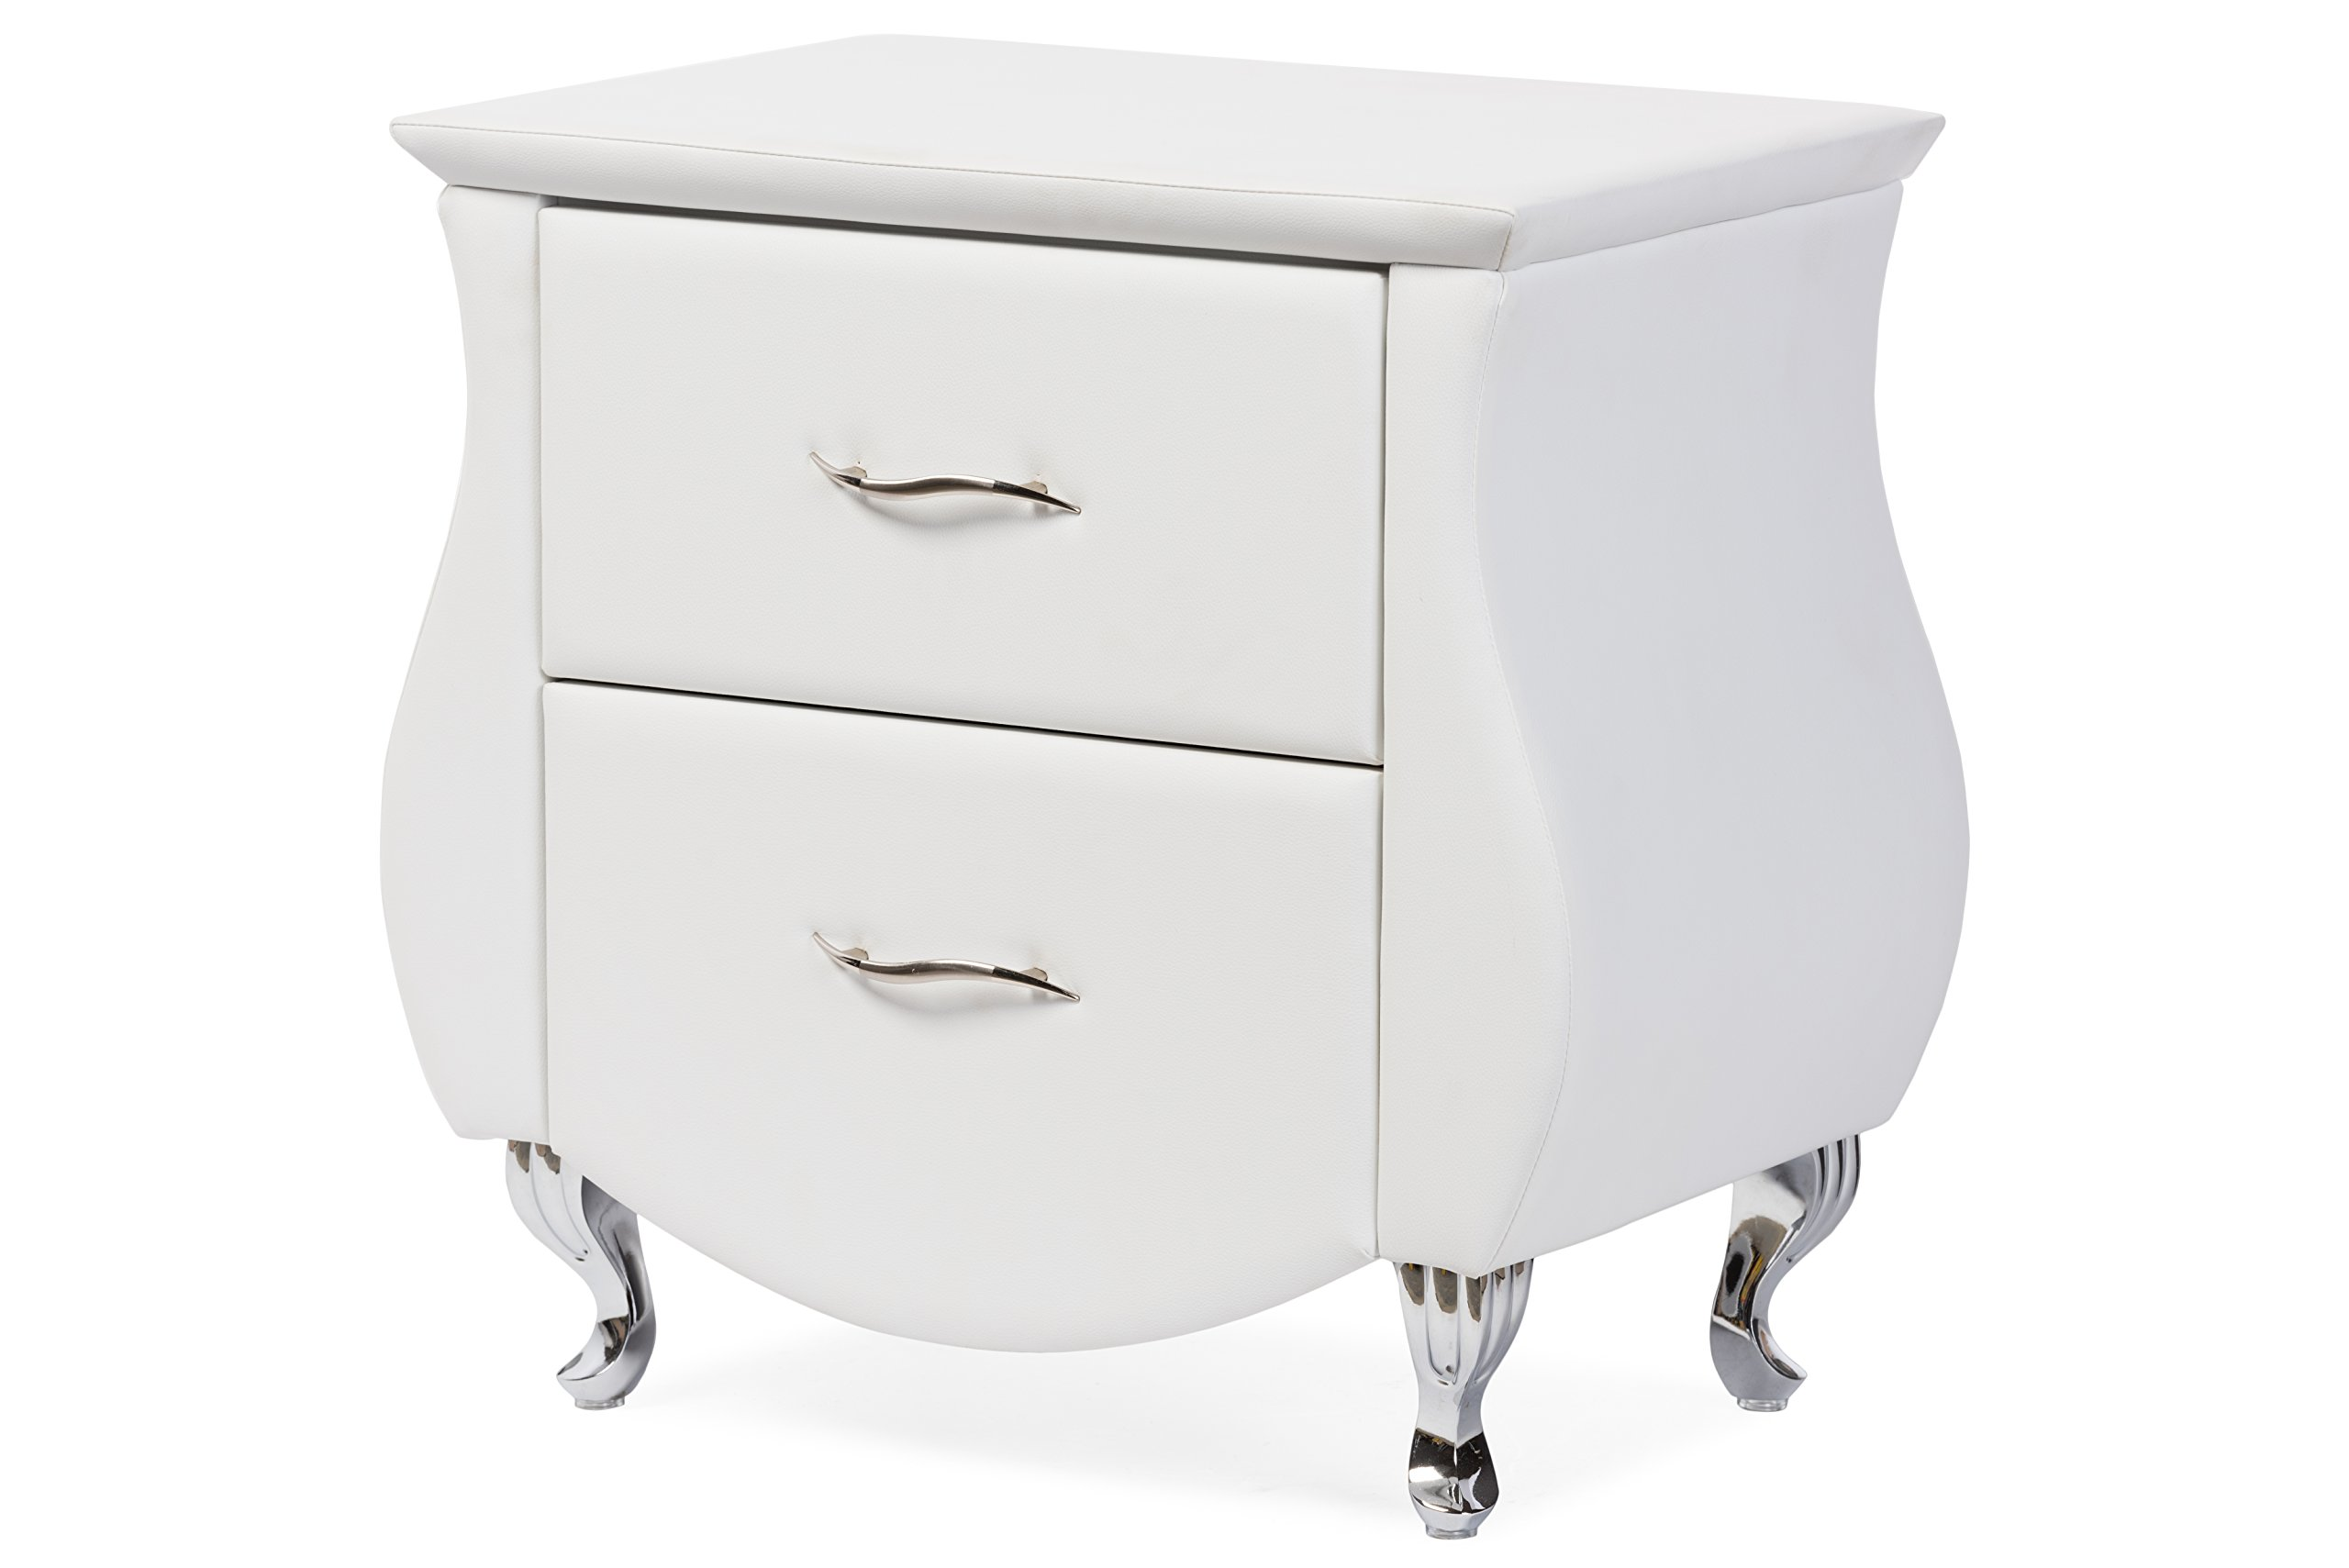 Baxton Studio Erin Modern & Contemporary Faux Leather Upholstered Nightstand, Medium, White